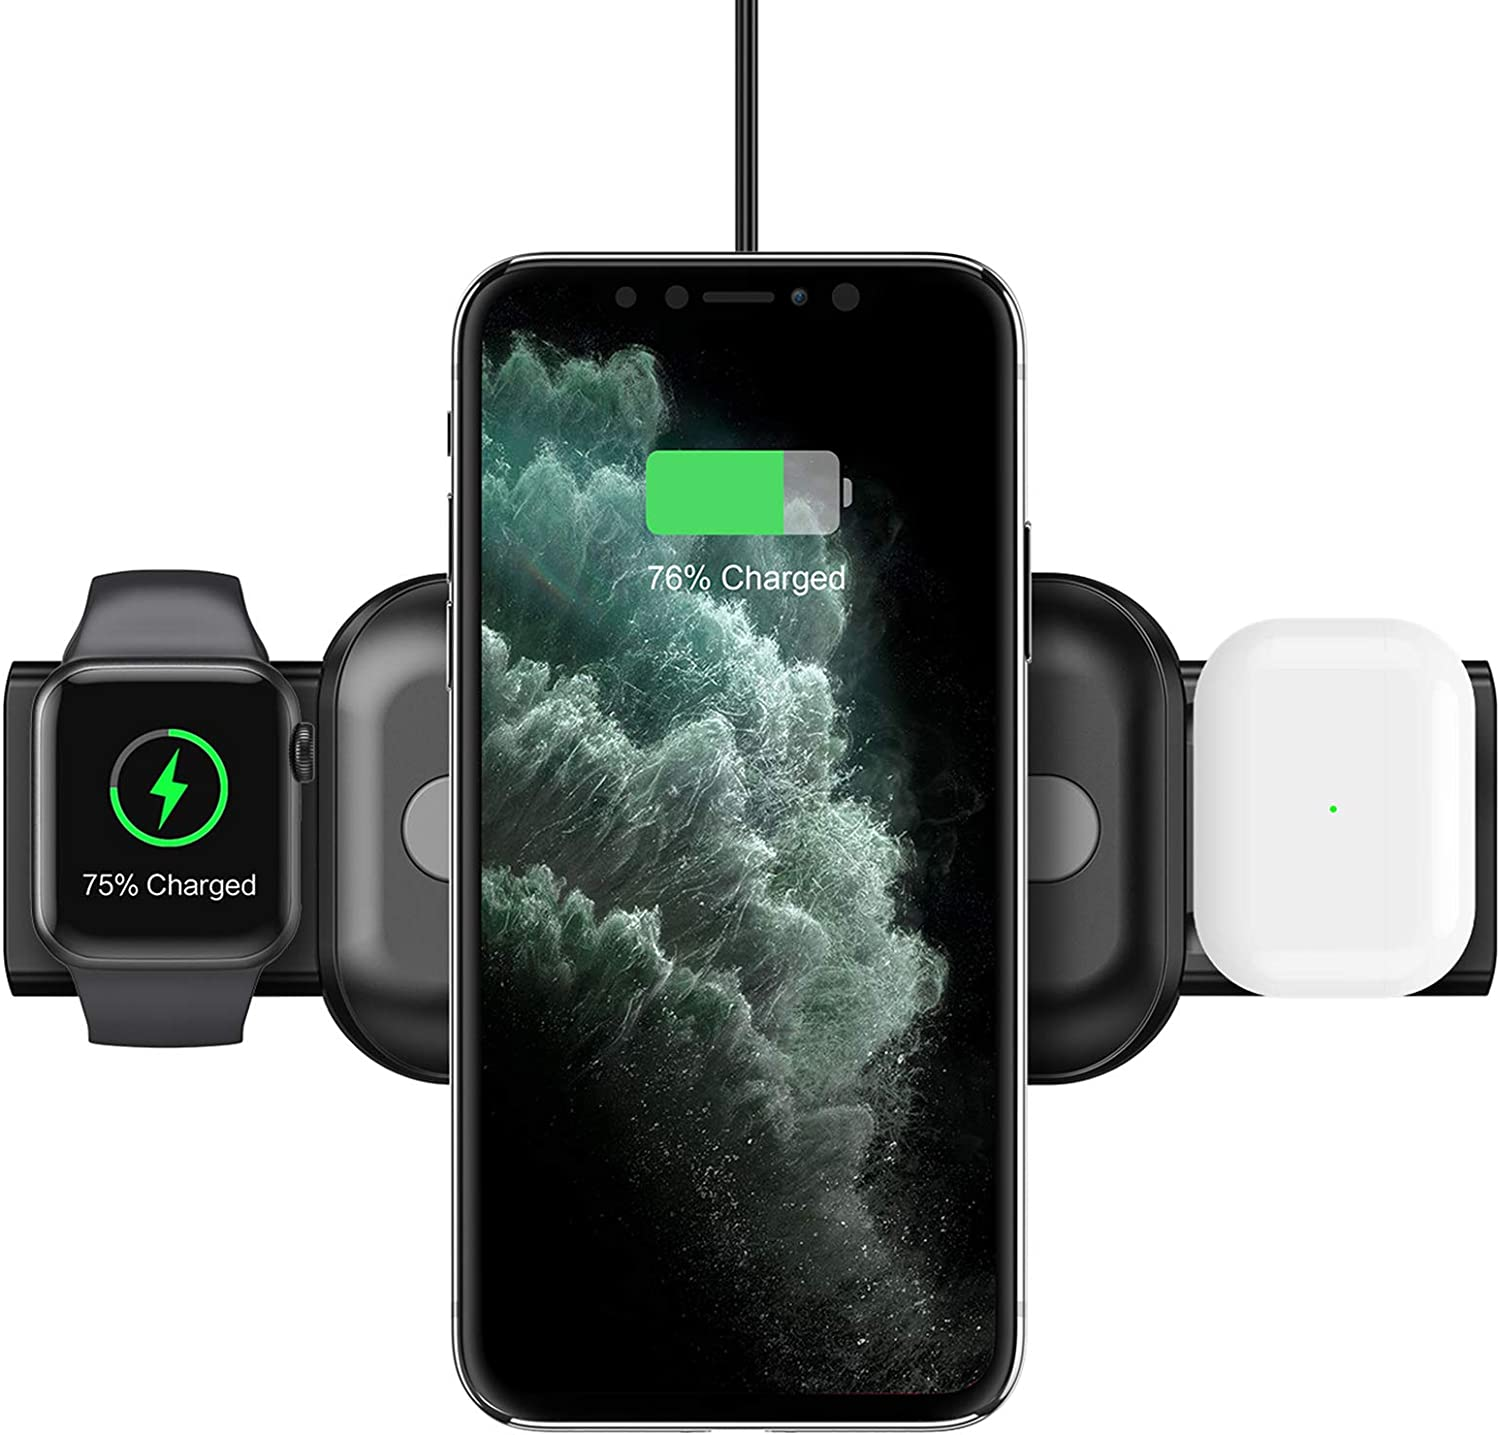 Nalwort 3 in 1 Wireless Charging Station Compatible for iPhone Apple Watch and AirPods Portable Qi Fast Charge Wireless Charger for iPhone 12/11/XR, iWatch Series 6/SE/5/4/3/2/1 and More